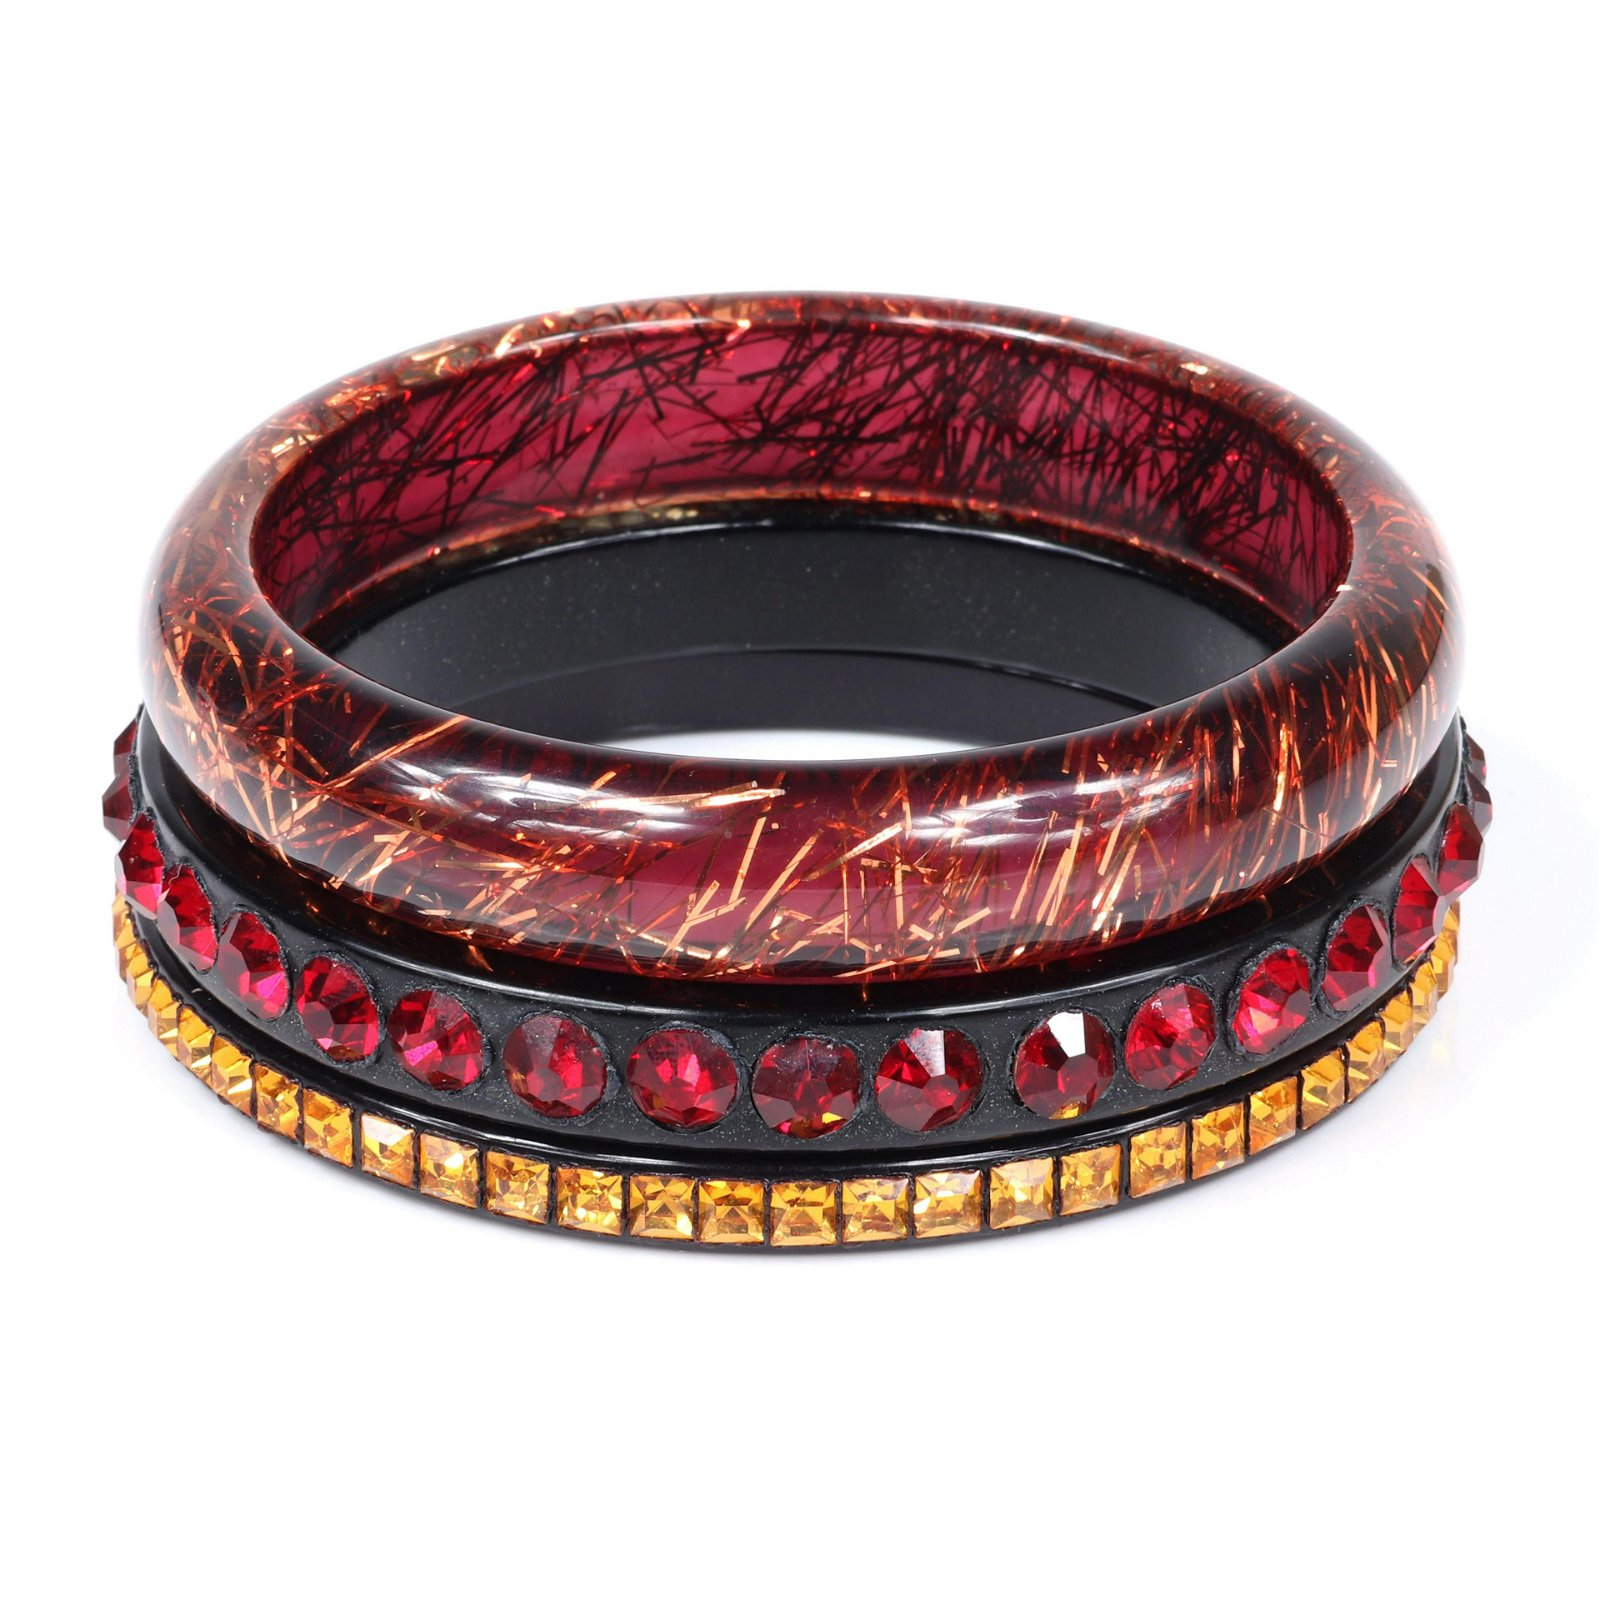 Three vintage designer resin and sparkle bangle